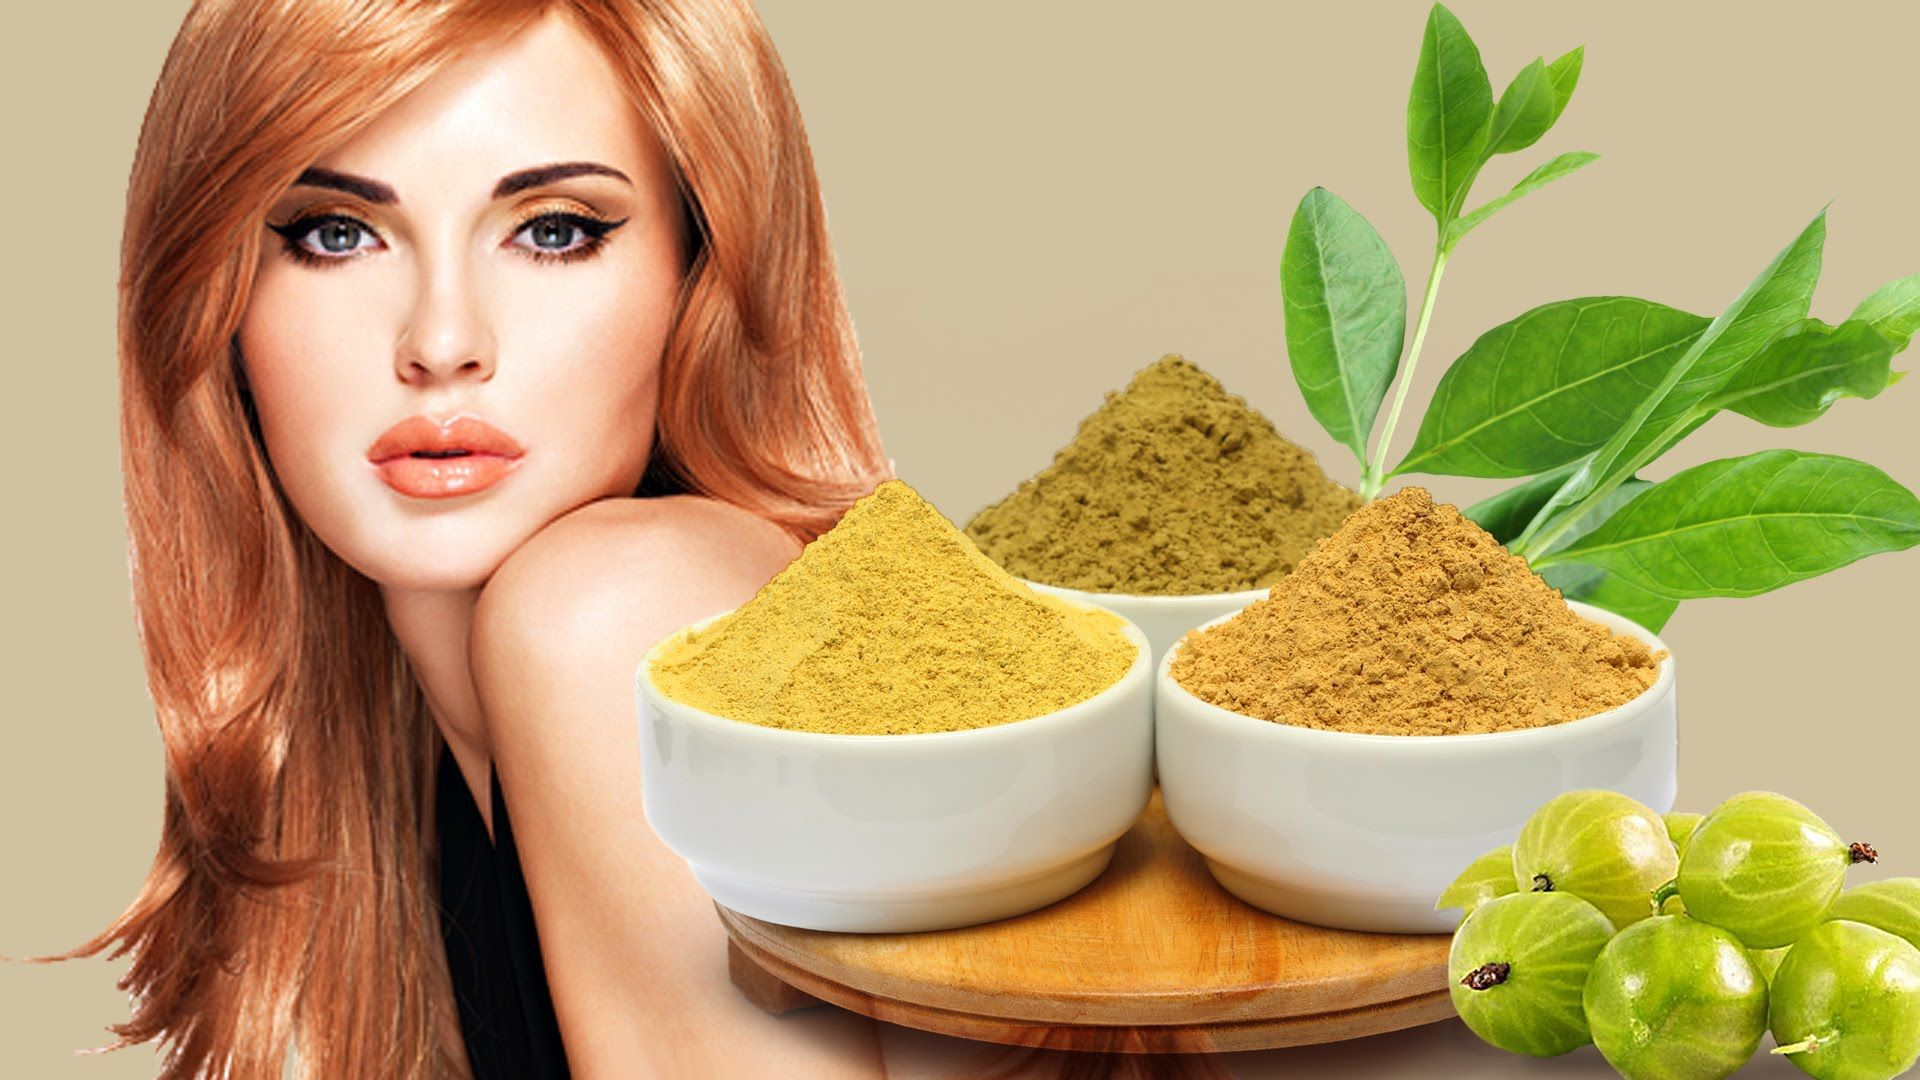 All Natural Hair Color, Makeup, Body, Skin, Lip products made from ...